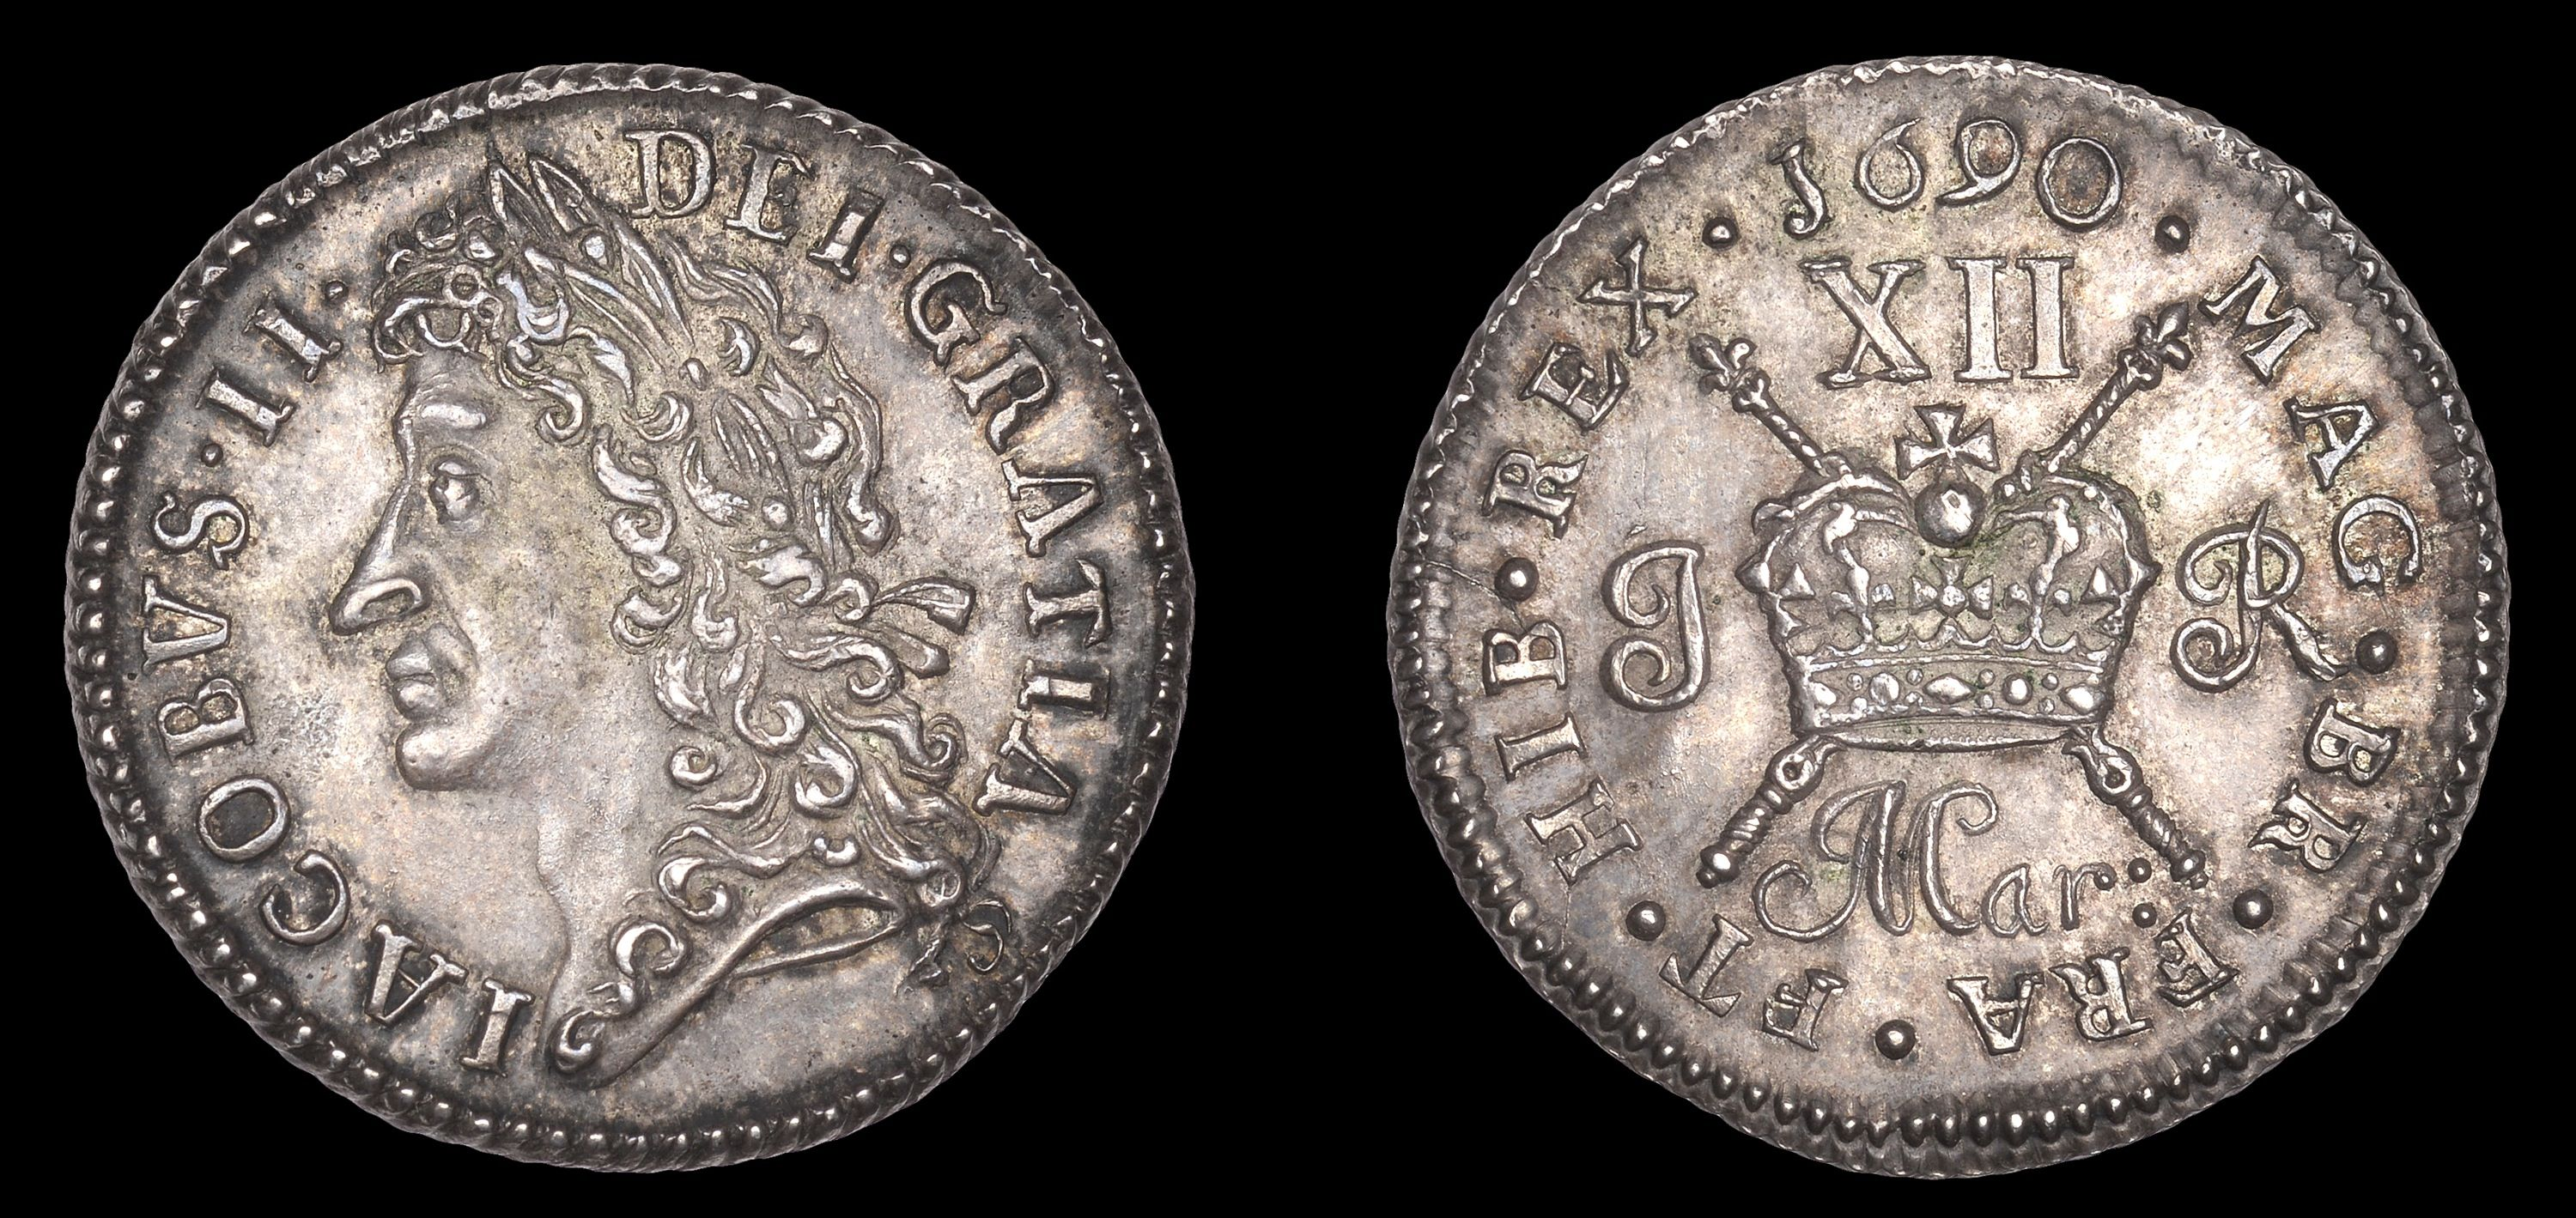 Gunmoney coinage, Proof Shilling, 1690 Mar:, in silver, James press, foliate bands on crown, sceptre to stop between br fra, edge grained, 7.03g/12h (S 6581PPP; DF 431; KM. 94a; cf. LaRiviere 169, same dies). Extremely fine with reflective fields, toned, very rare